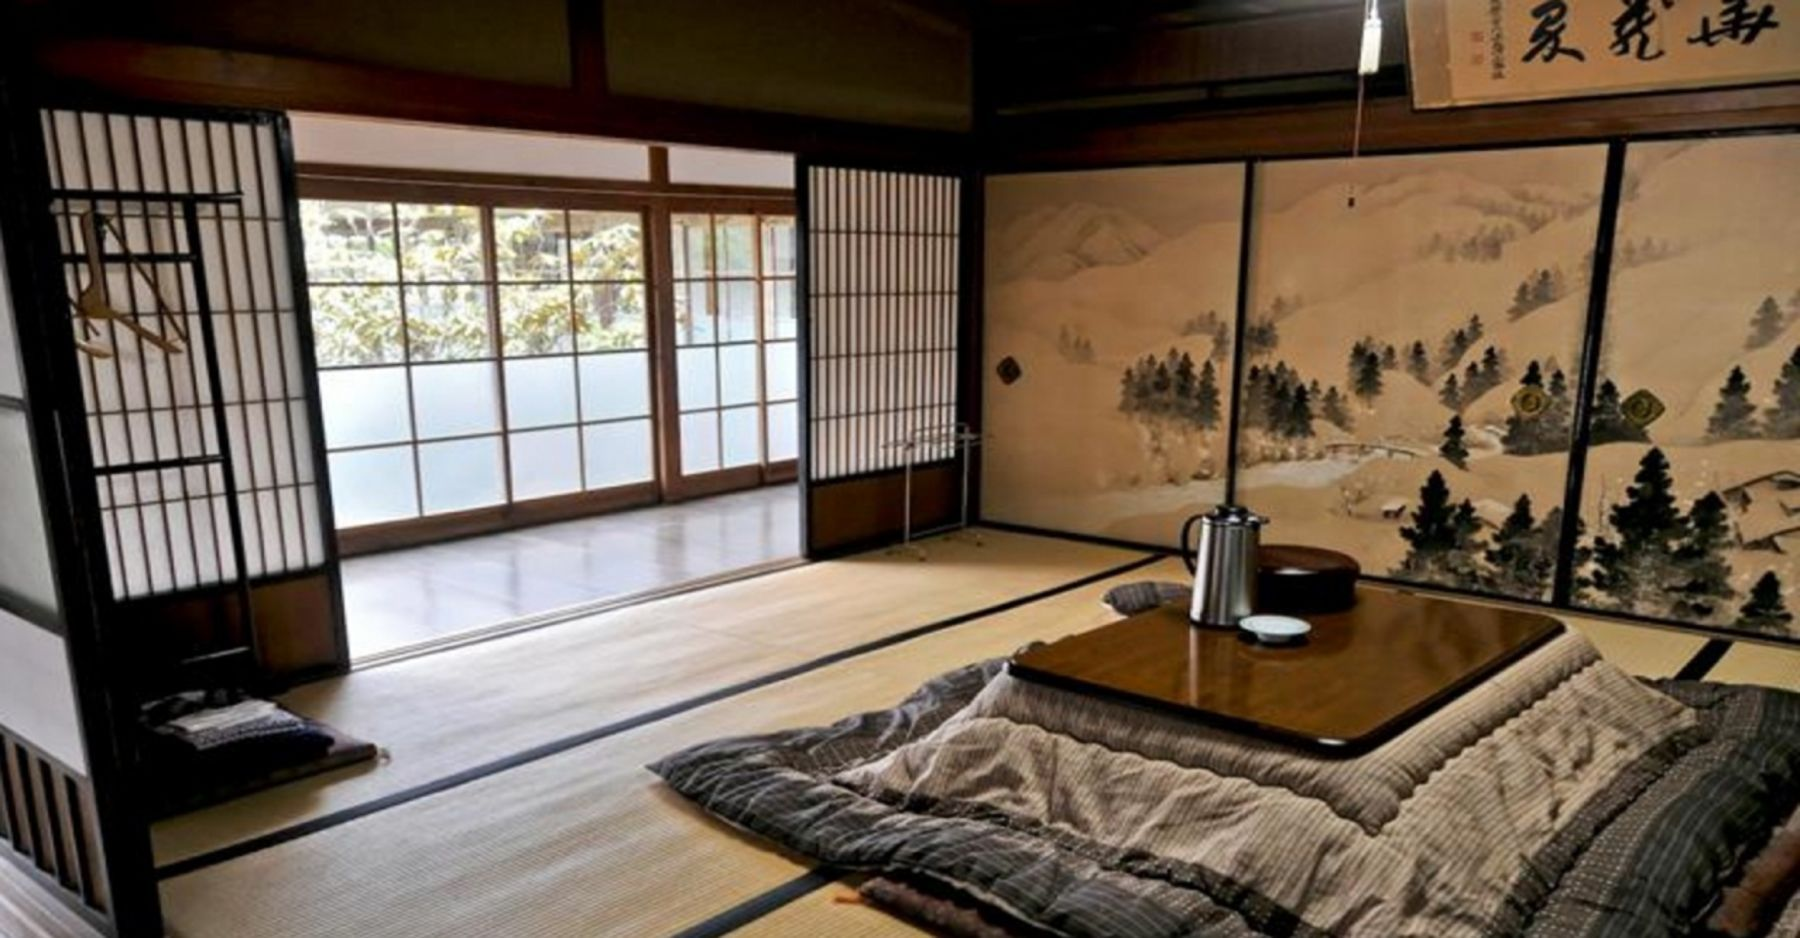 20 Popular Traditional Living Room With Japanese Styles For Your Home More Beautiful Inspiration Traditional Japanese House Japanese Room Japanese Living Rooms